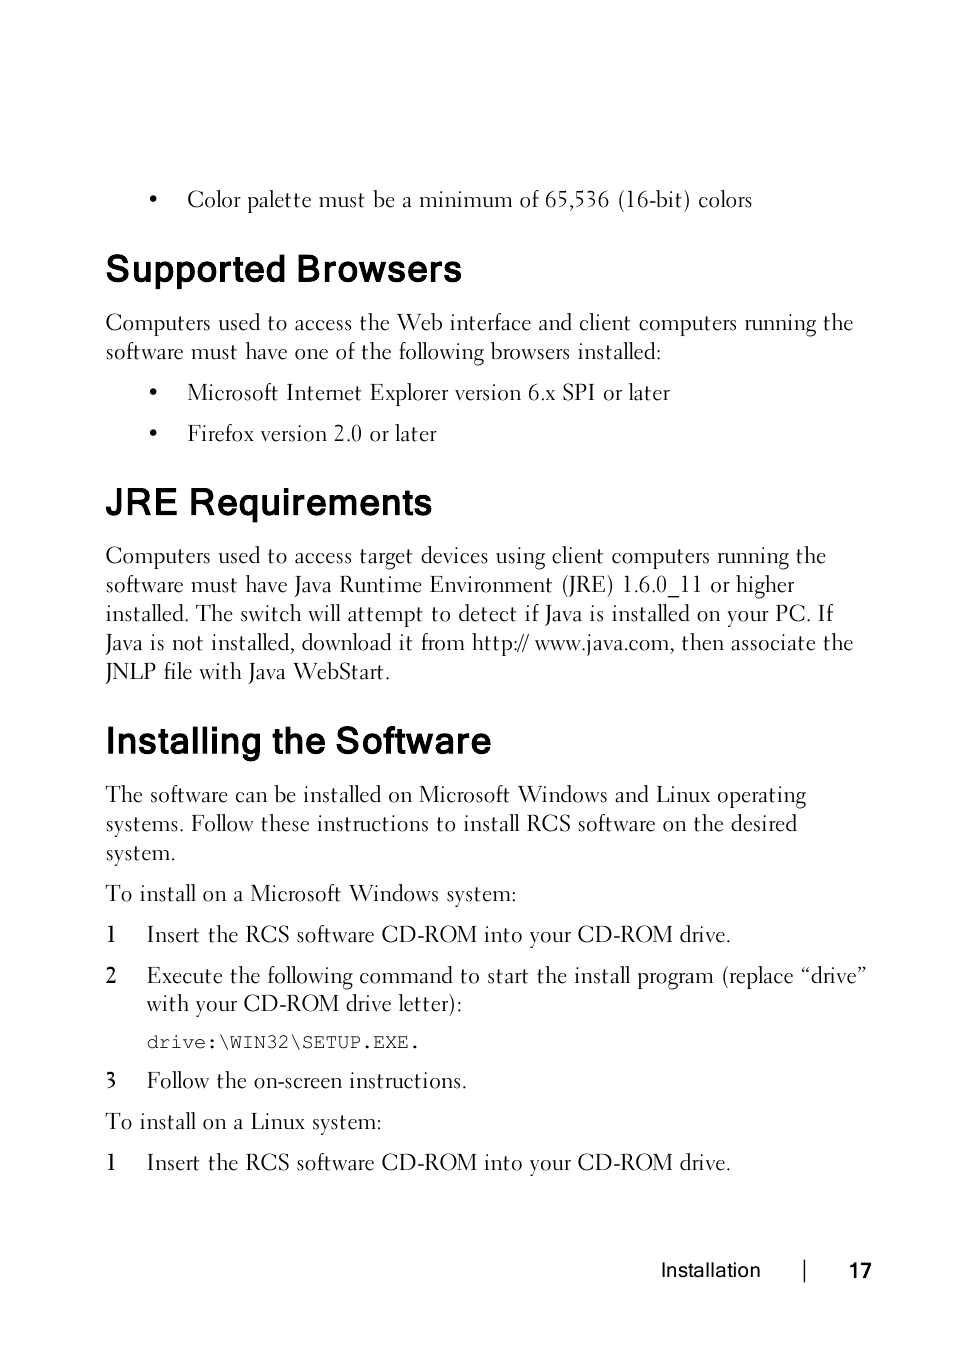 Java 6 System Requirements